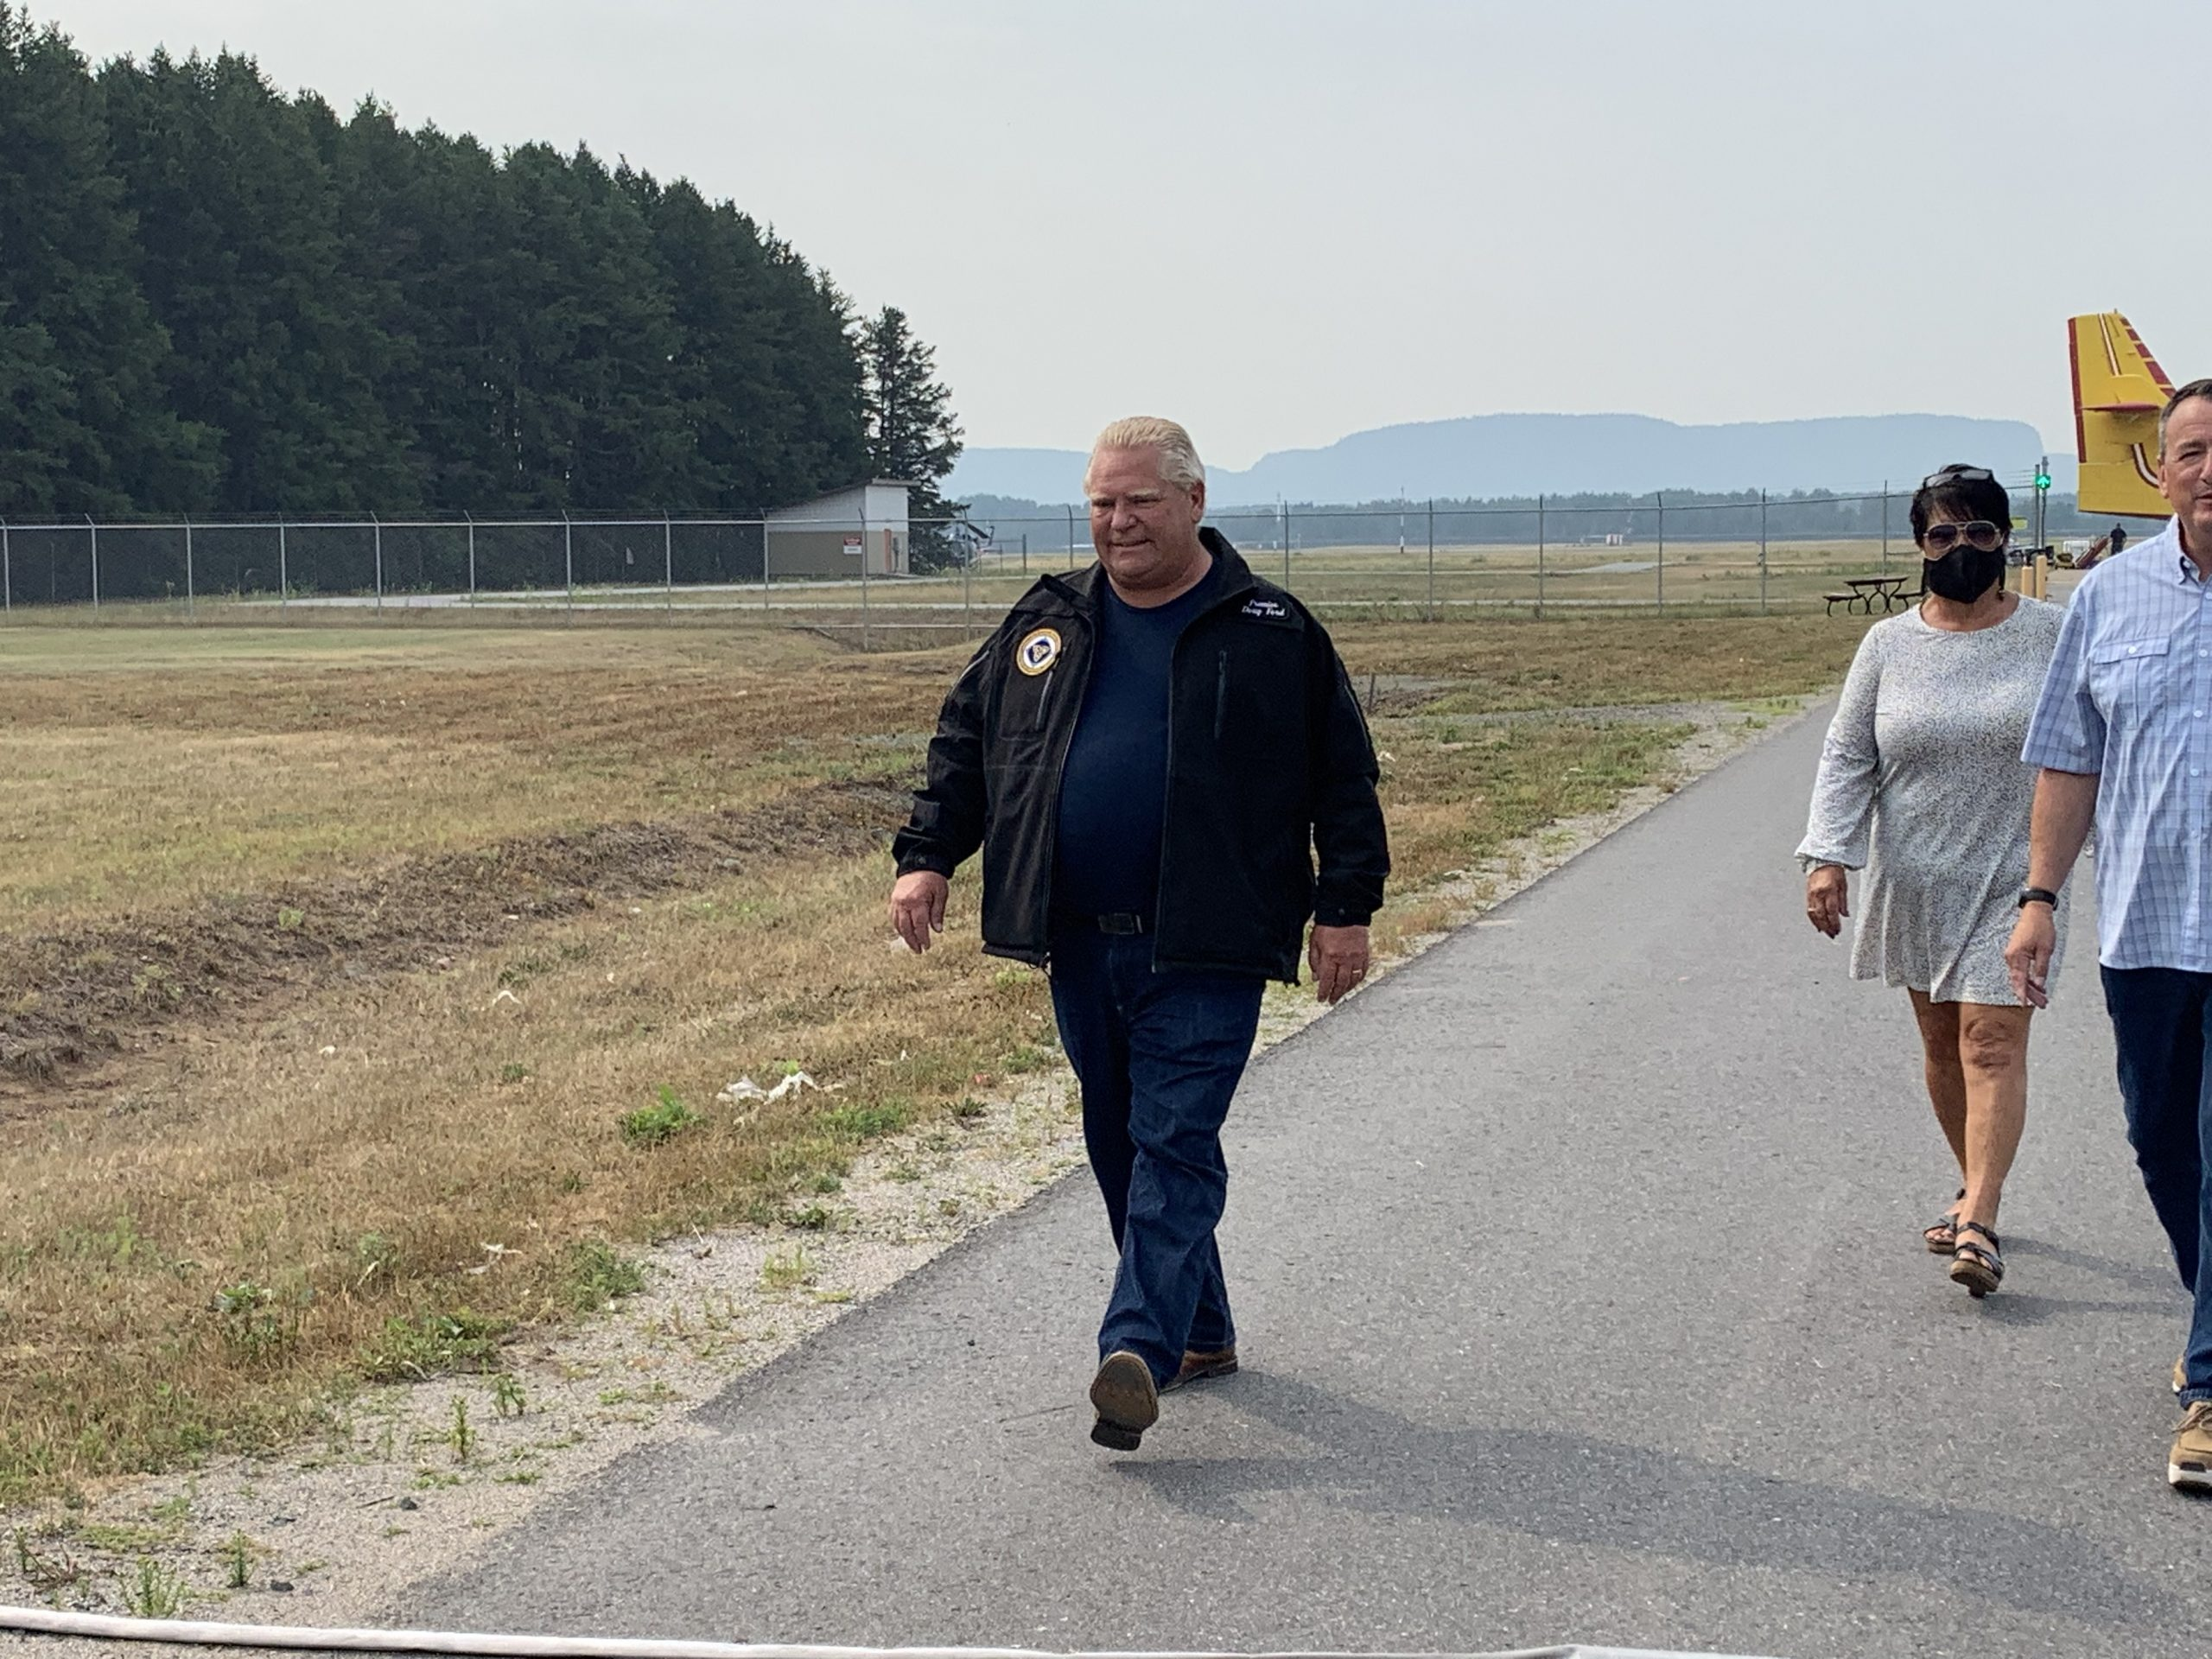 Premier Ford Visits Fire Evacuees in Thunder Bay